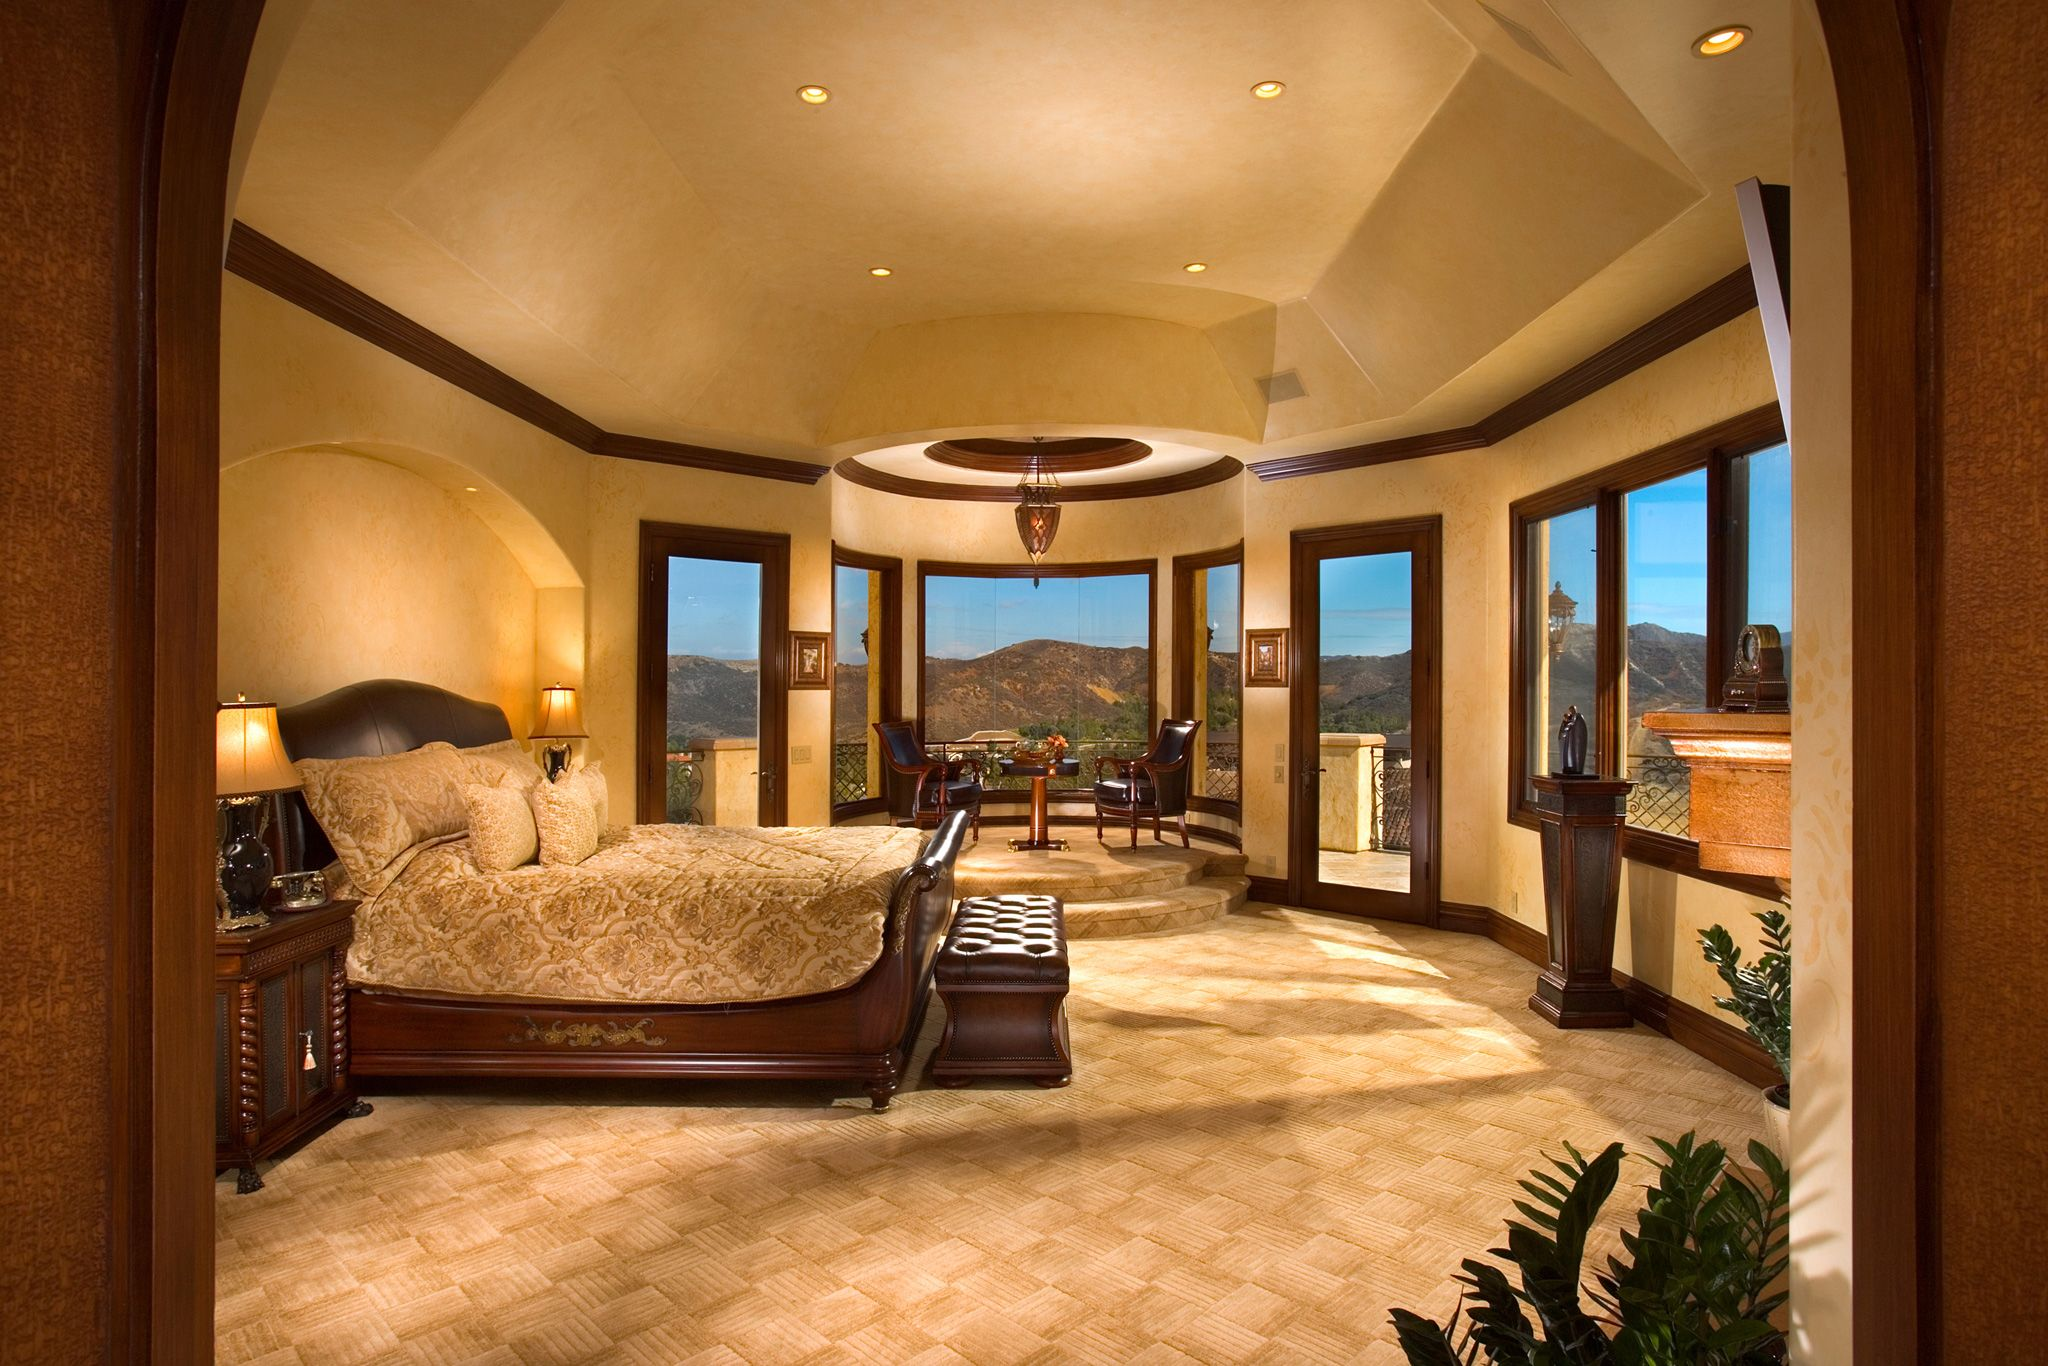 21 incredible master bedrooms design ideas | luxury master bedroom